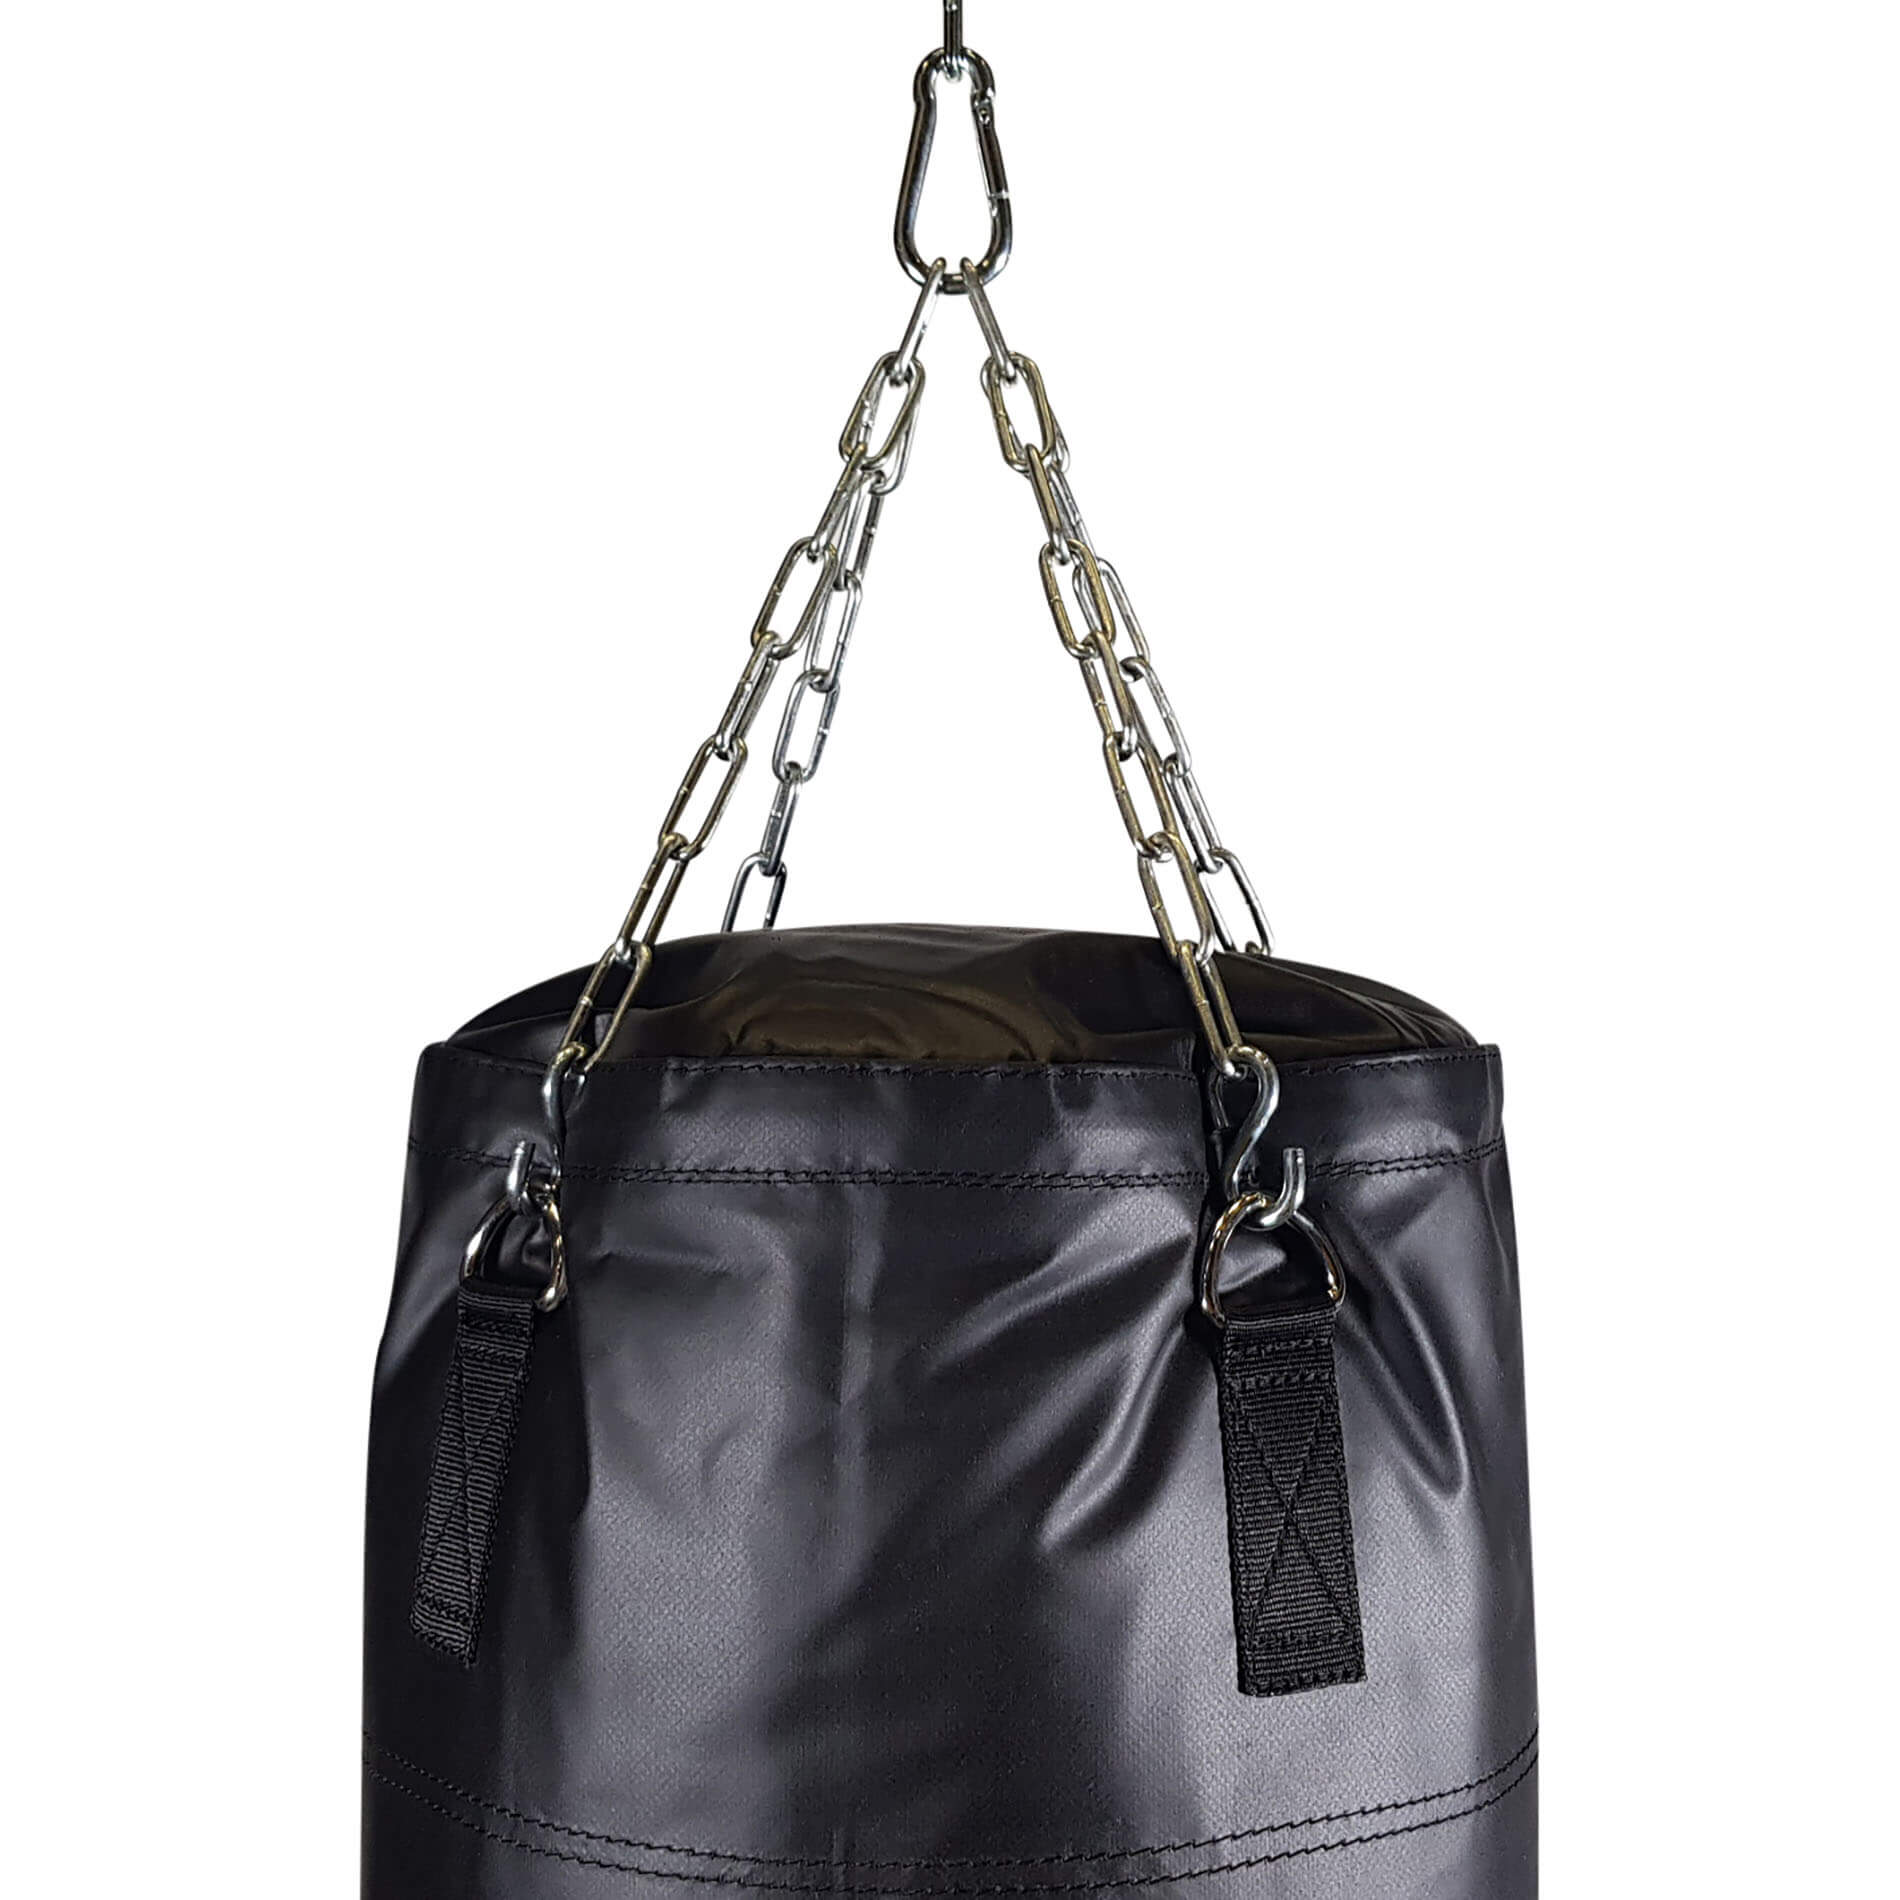 Boxing Bag Filled with Chain - 180cm